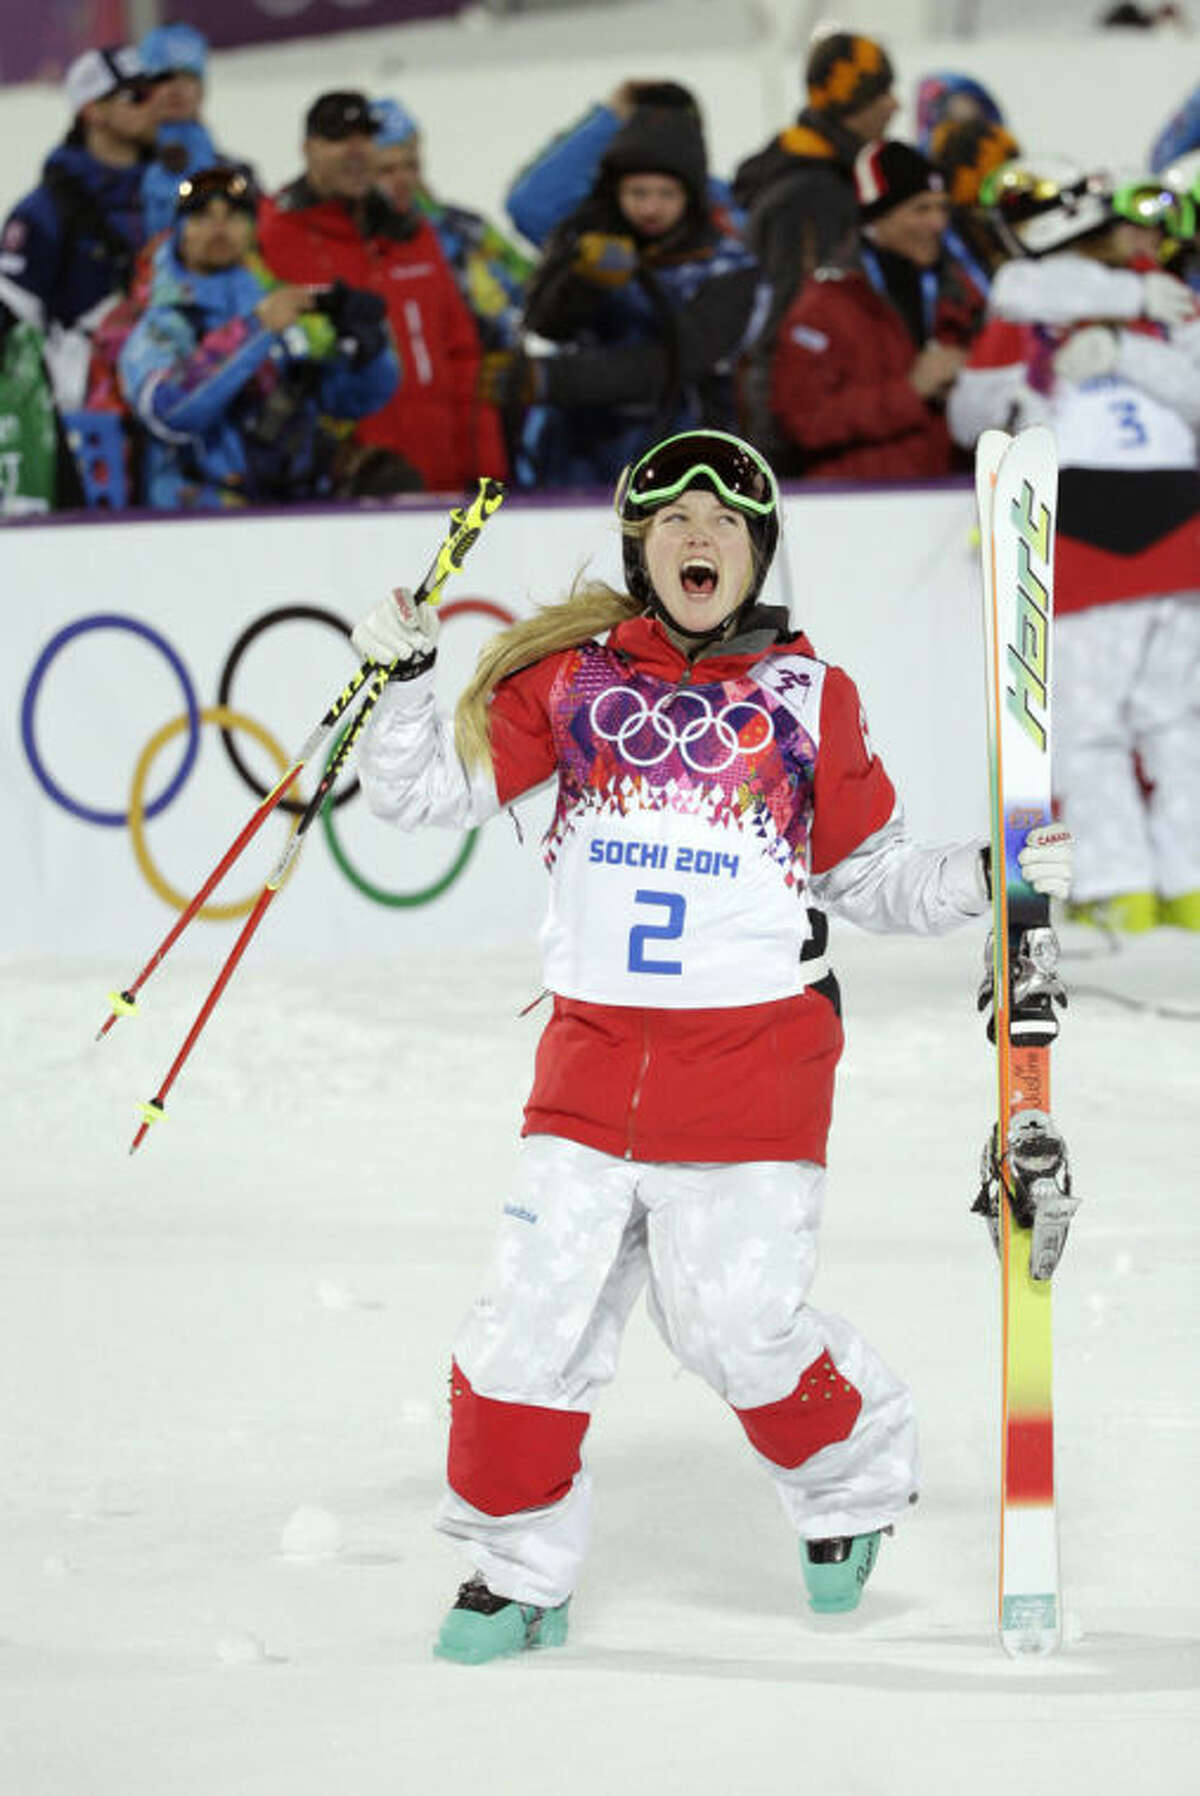 Canada's Justine Dufour-Lapointe celebrates after winning the gold medal final in the women's moguls at the 2014 Winter Olympics, Saturday, Feb. 8, 2014, in Krasnaya Polyana, Russia. (AP Photo/Jae C. Hong)